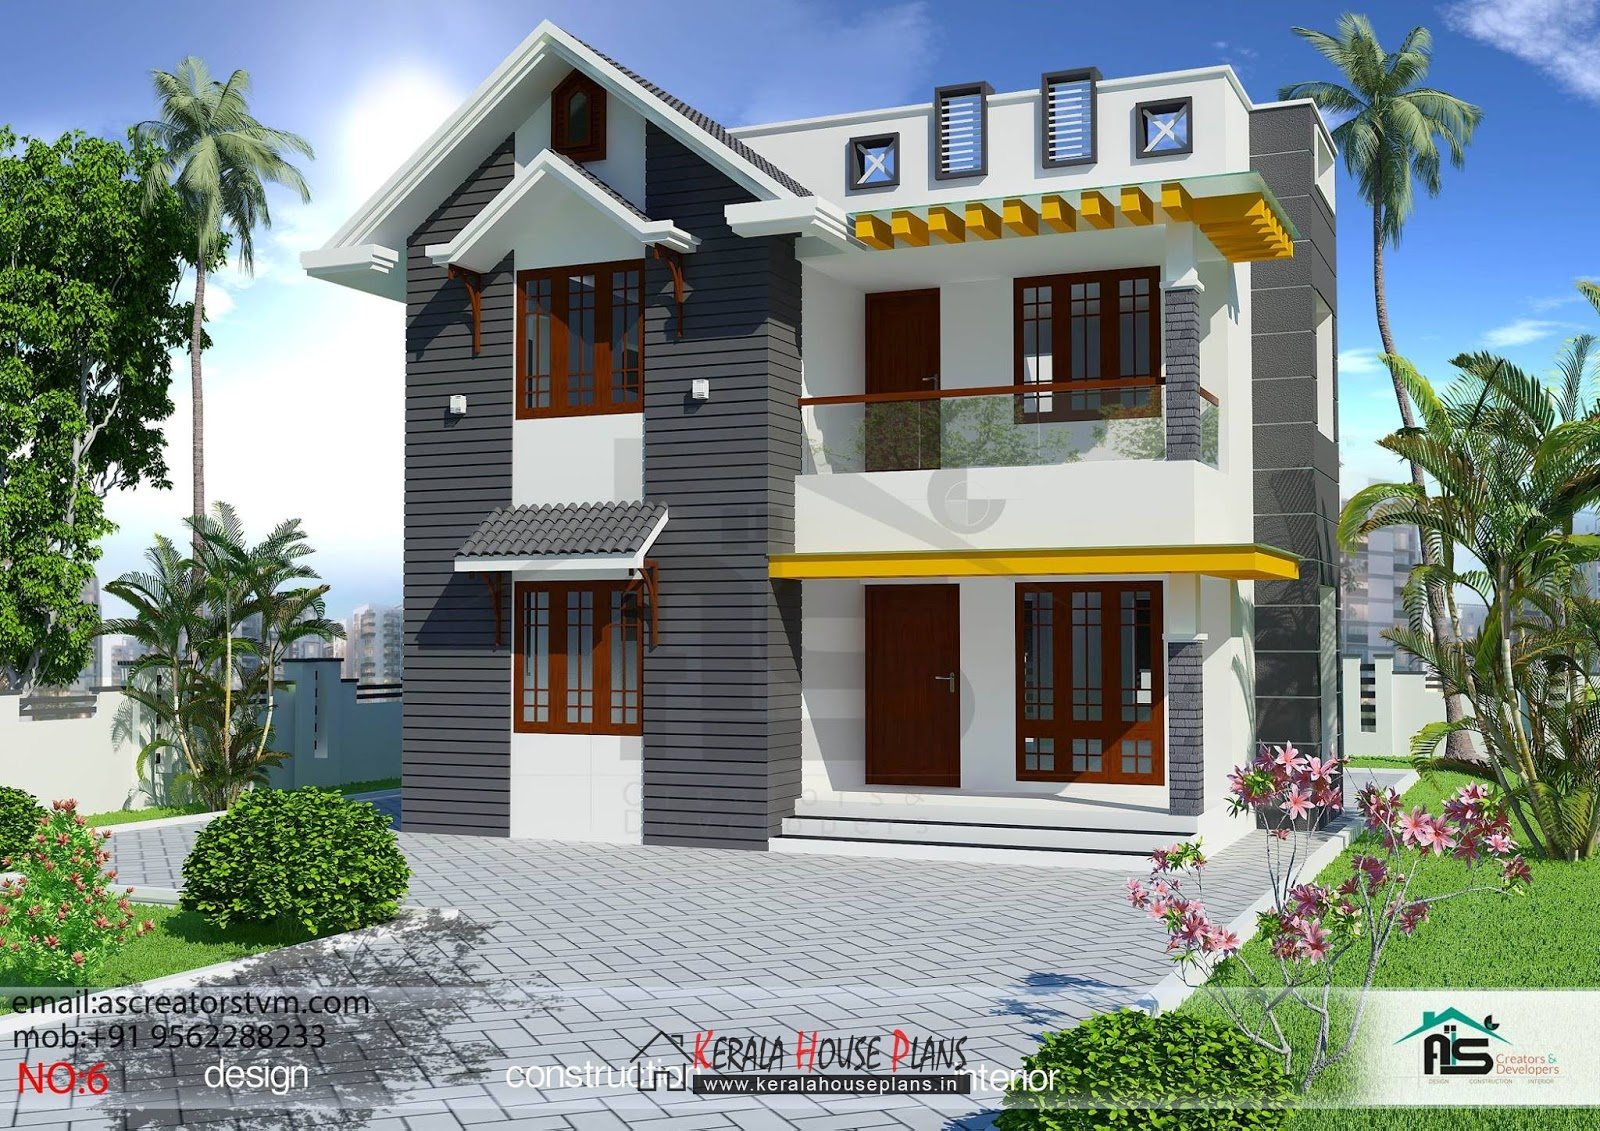 3 bedroom house plans in kerala double floor kerala for 3 bed room home